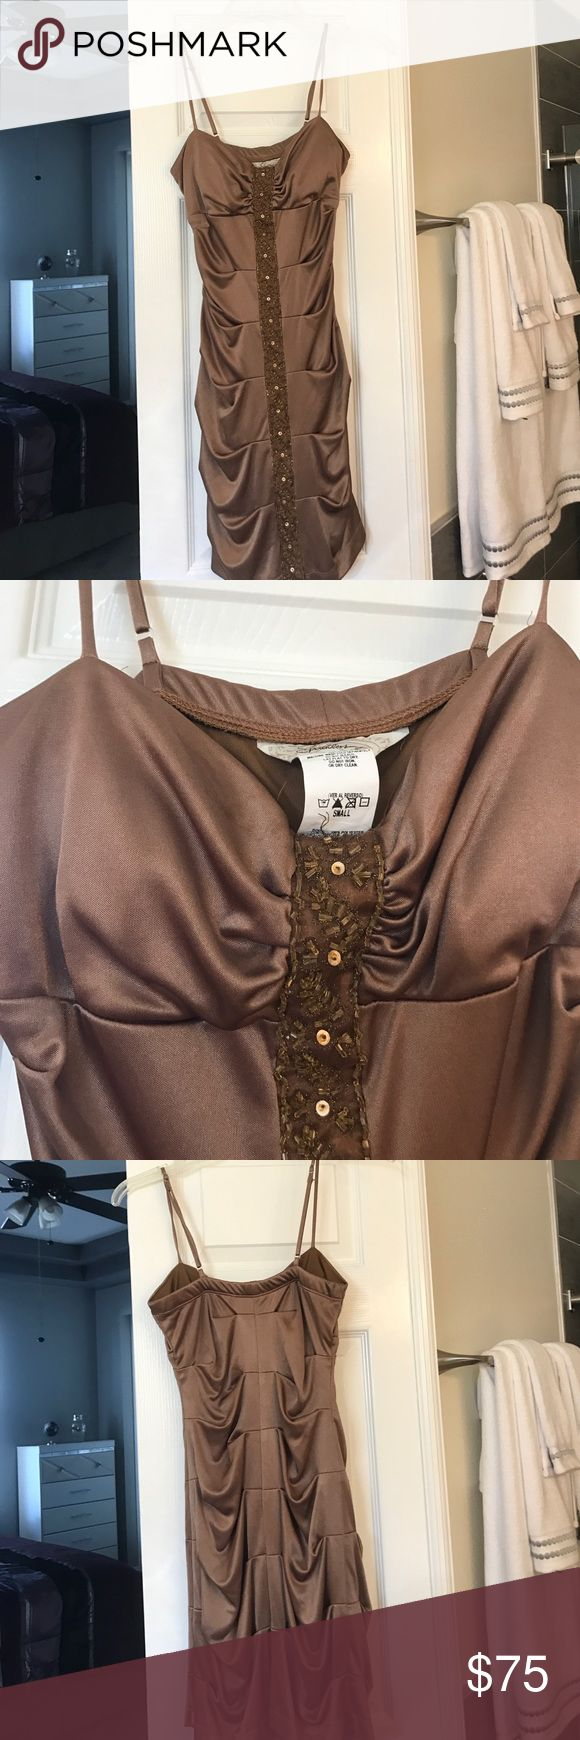 Brown tight dress WILL TAKE OFFERS; Wonderful brown sequence dress for homecoming, prom, going out, or any occasion; brand new Skirts